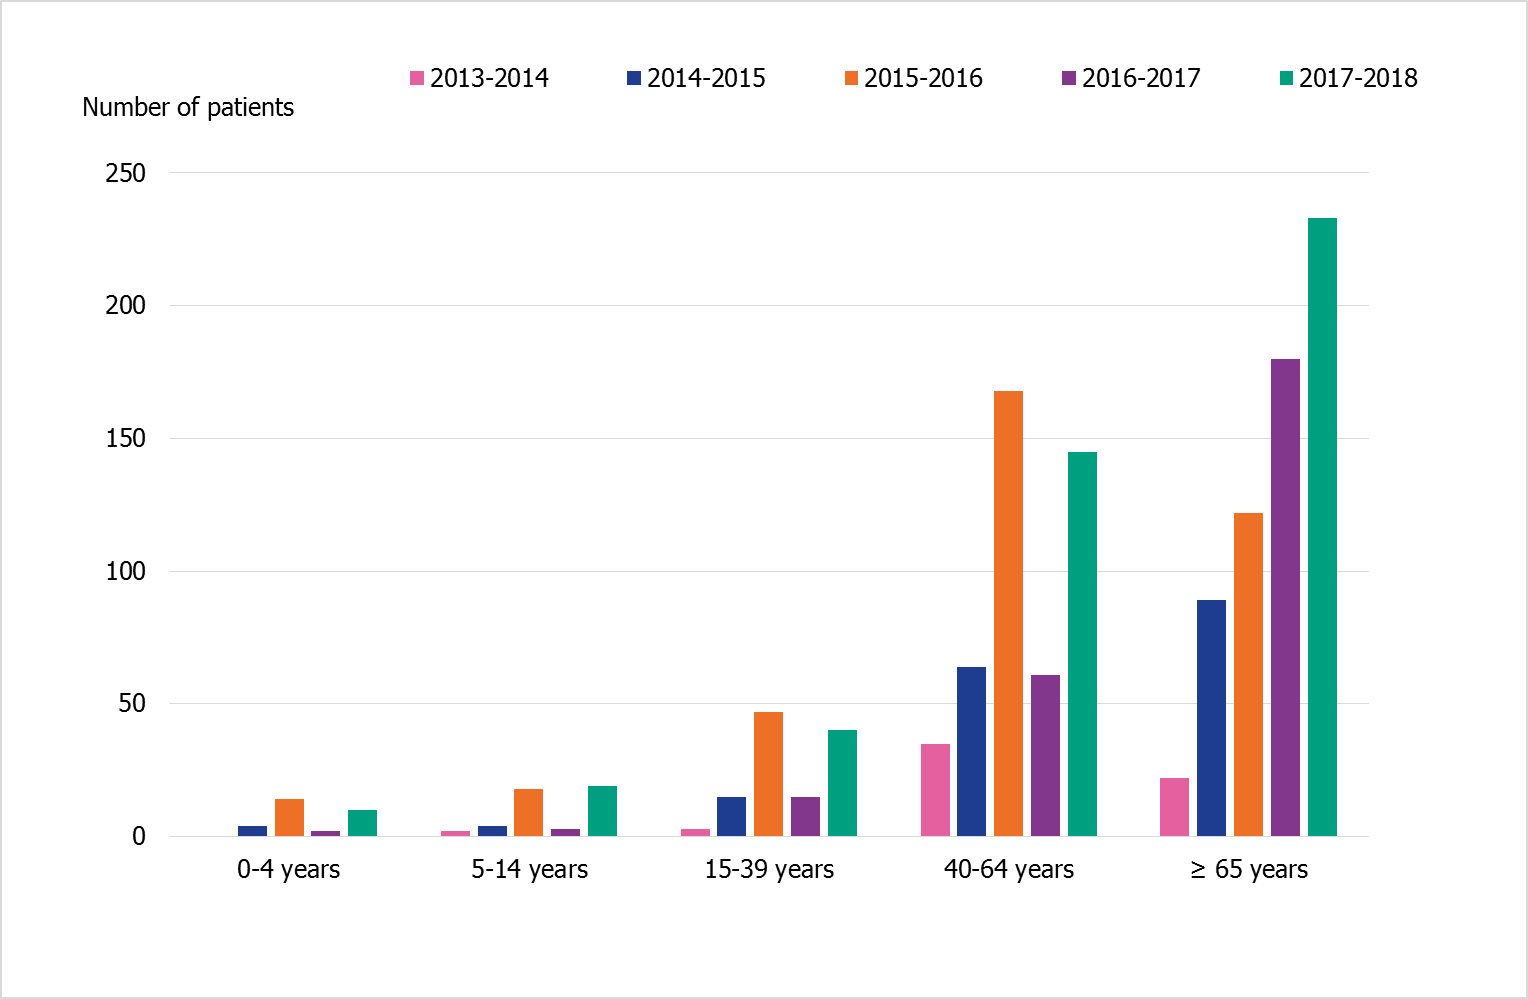 Age distribution of patients in intensive care with influenza during five seasons, in age groups 0-4 years, 5-14 years, 15-39 years, 40-64 years, and 65+. 2015-2016 and 2017-2018 stick out with higher bars for those 40-64 compared with other seasons.